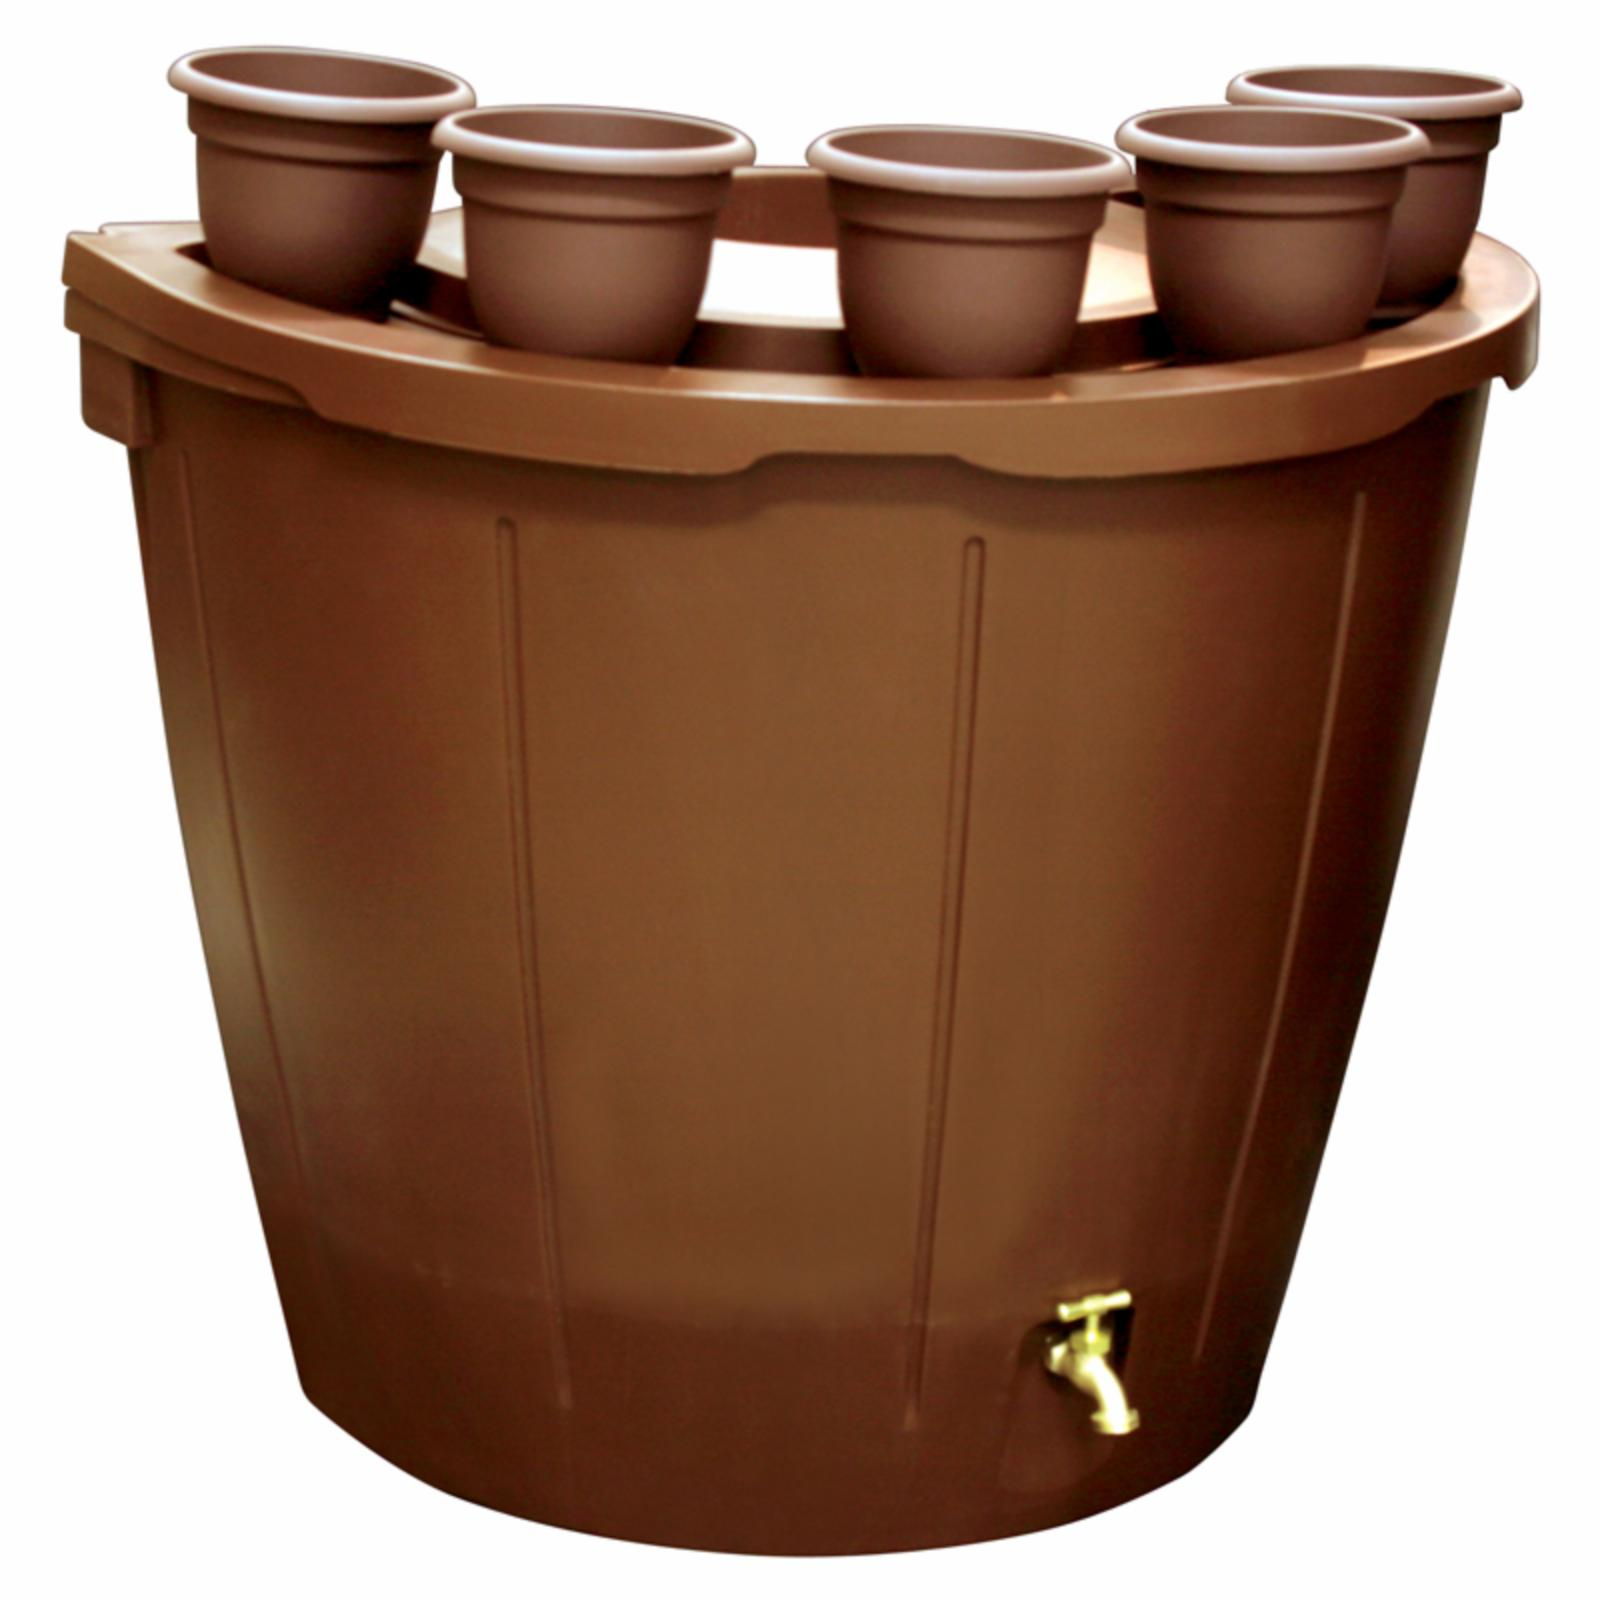 KoolScapes 50 gal. Rain Barrel with 5 Planters - RBBP-50